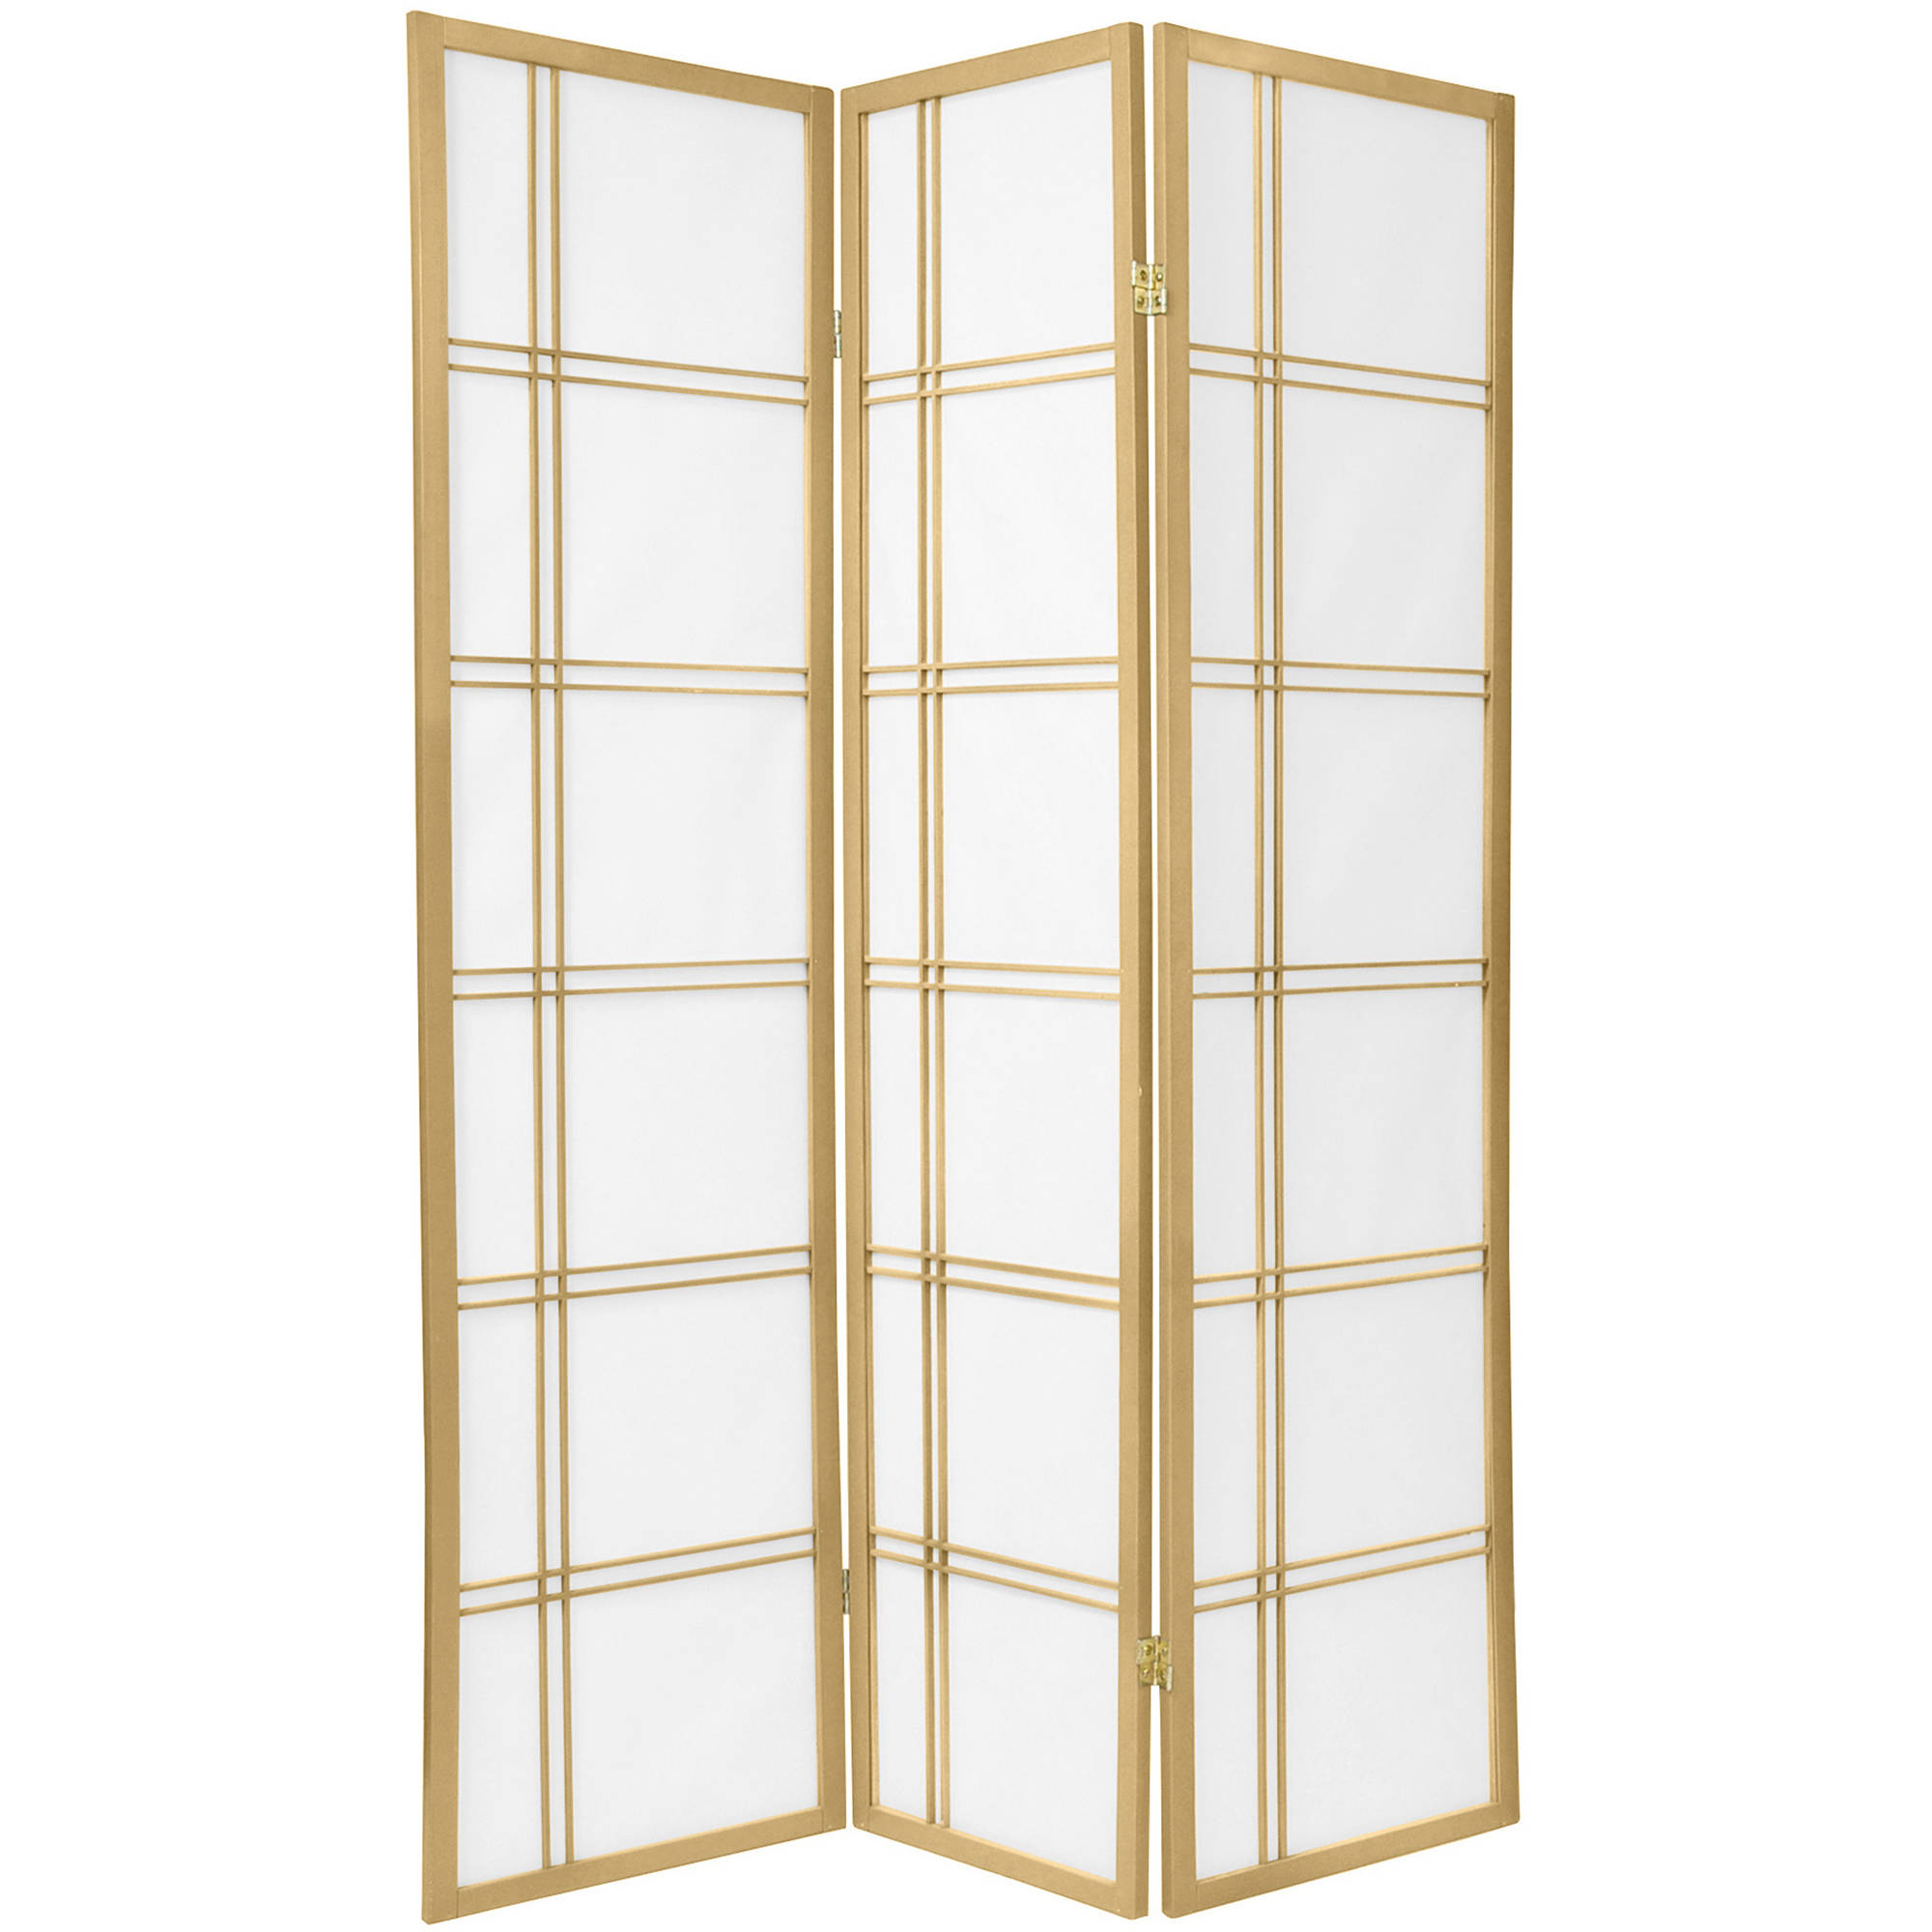 6' Tall Double Cross Shoji Screen Special Edition